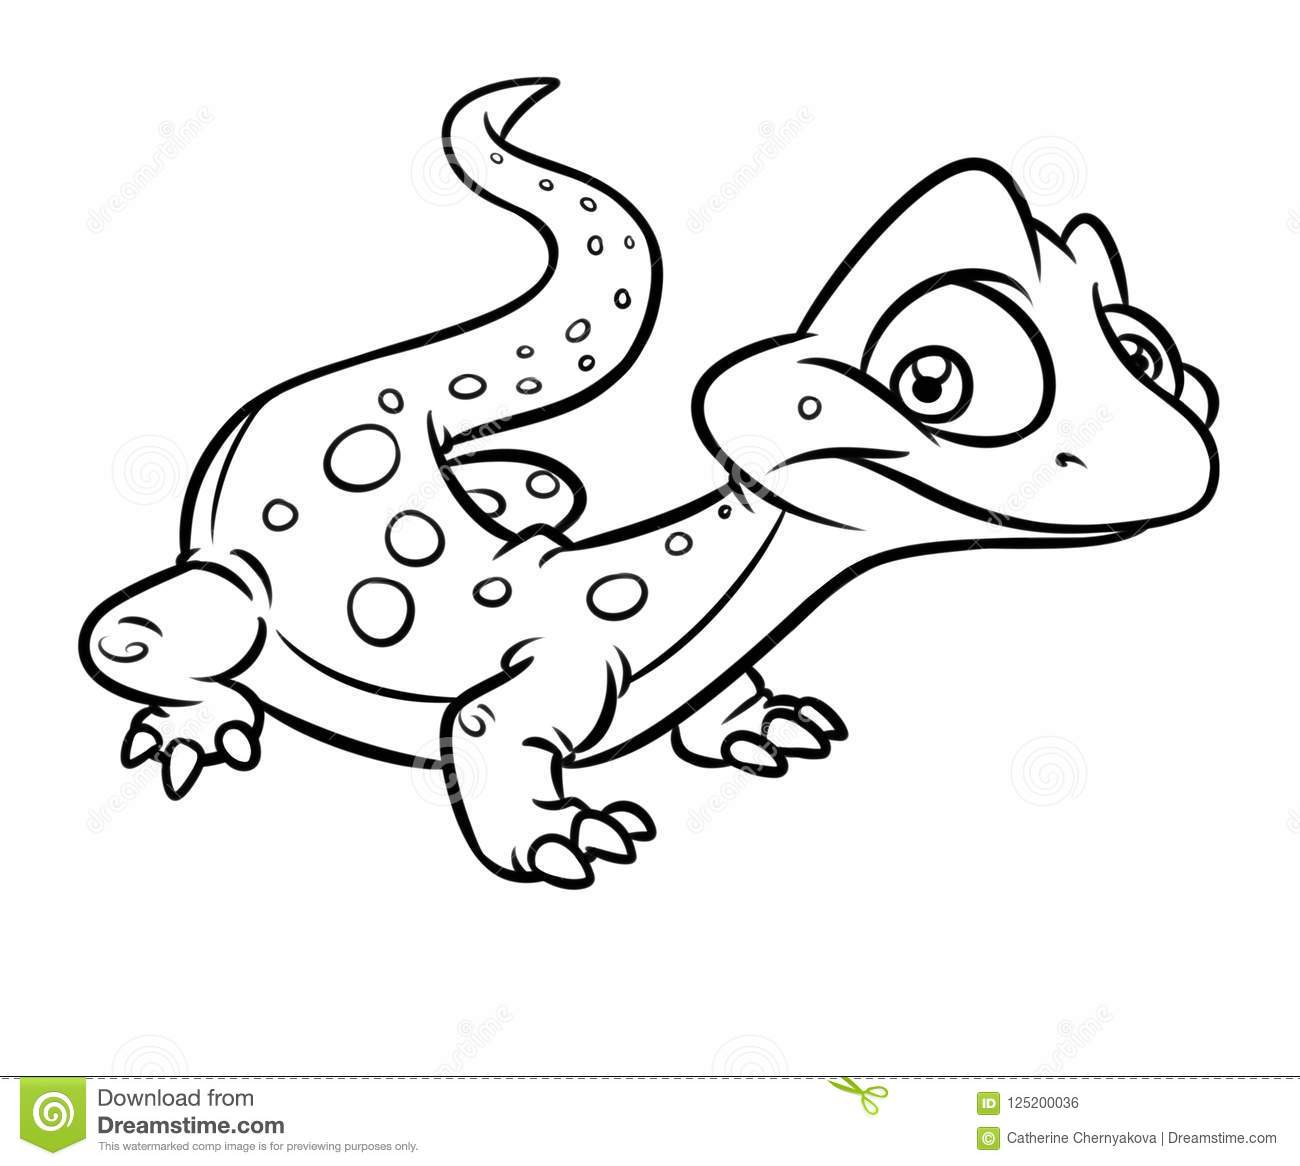 90's cartoon coloring pages - Google Search | Cartoon coloring ... | 1166x1300